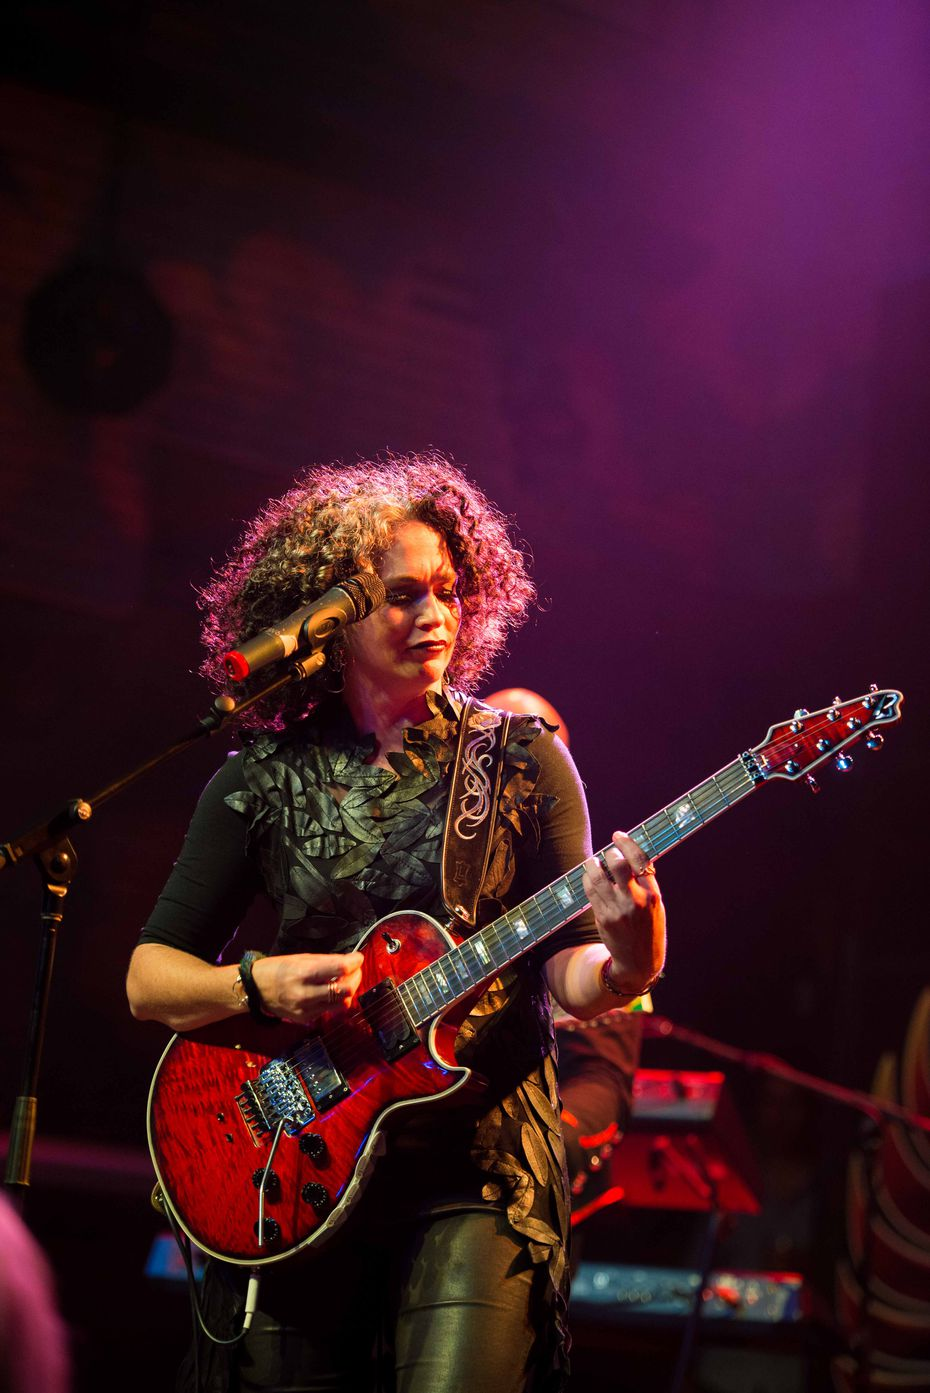 Vanessa Ogle, CEO of Enseo and lead singer/guitarist of GEM, performed at the House of Blues New Orleans in 2016.